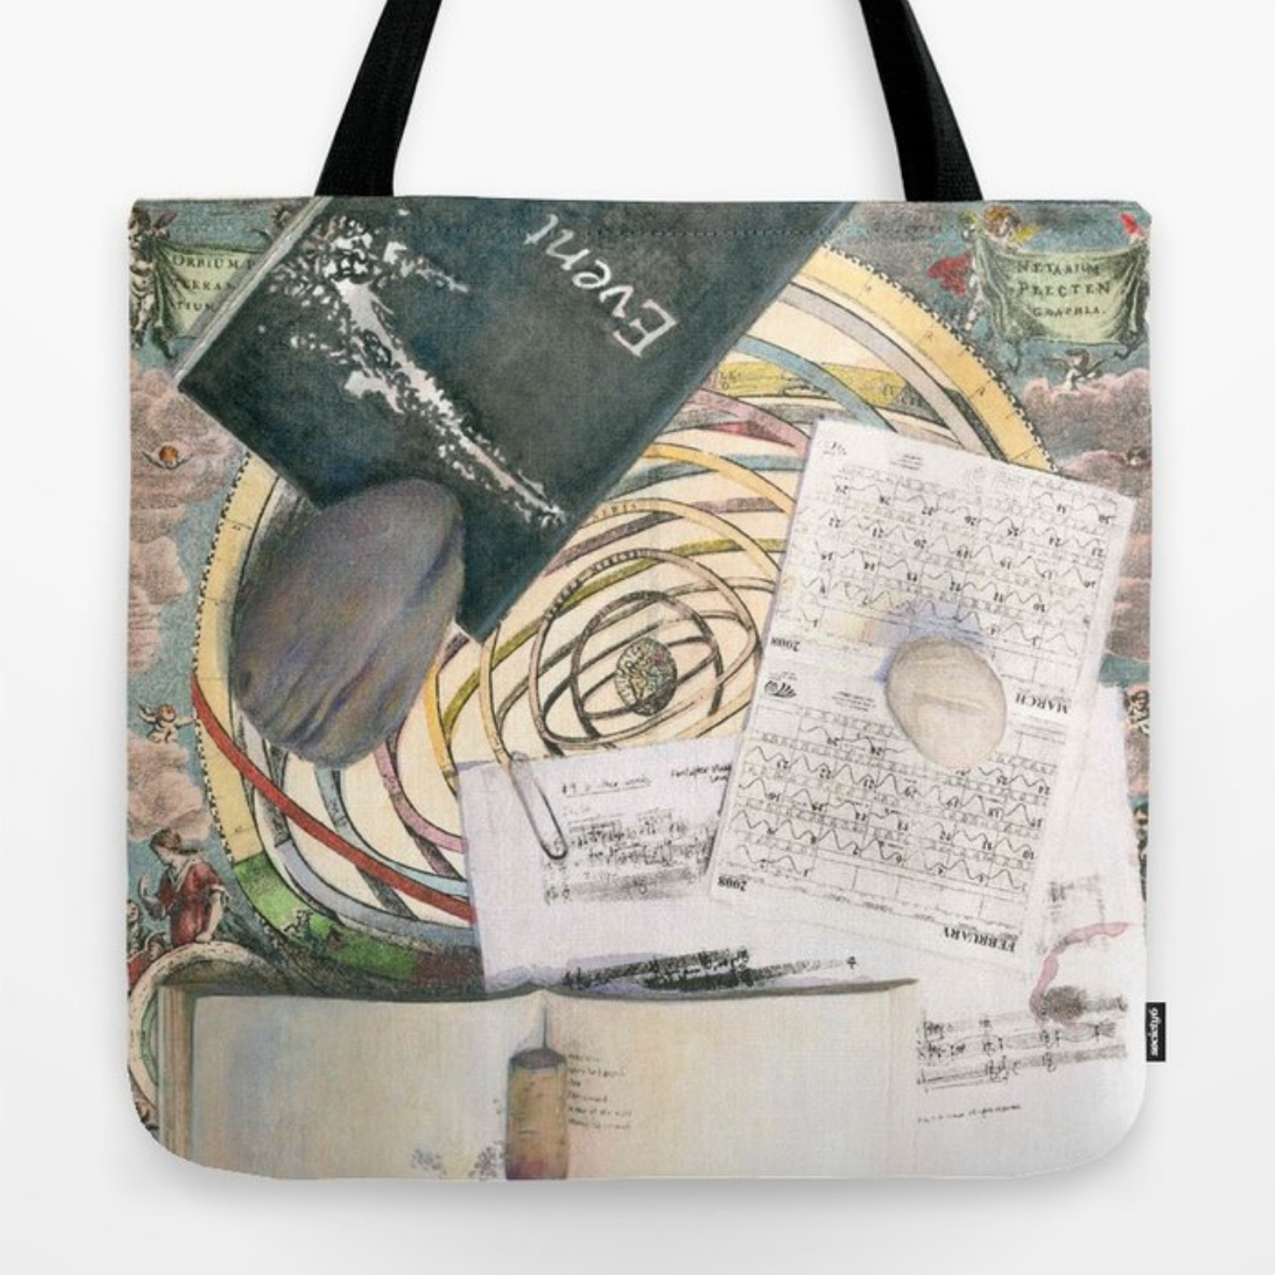 TOTE BAGS (large)